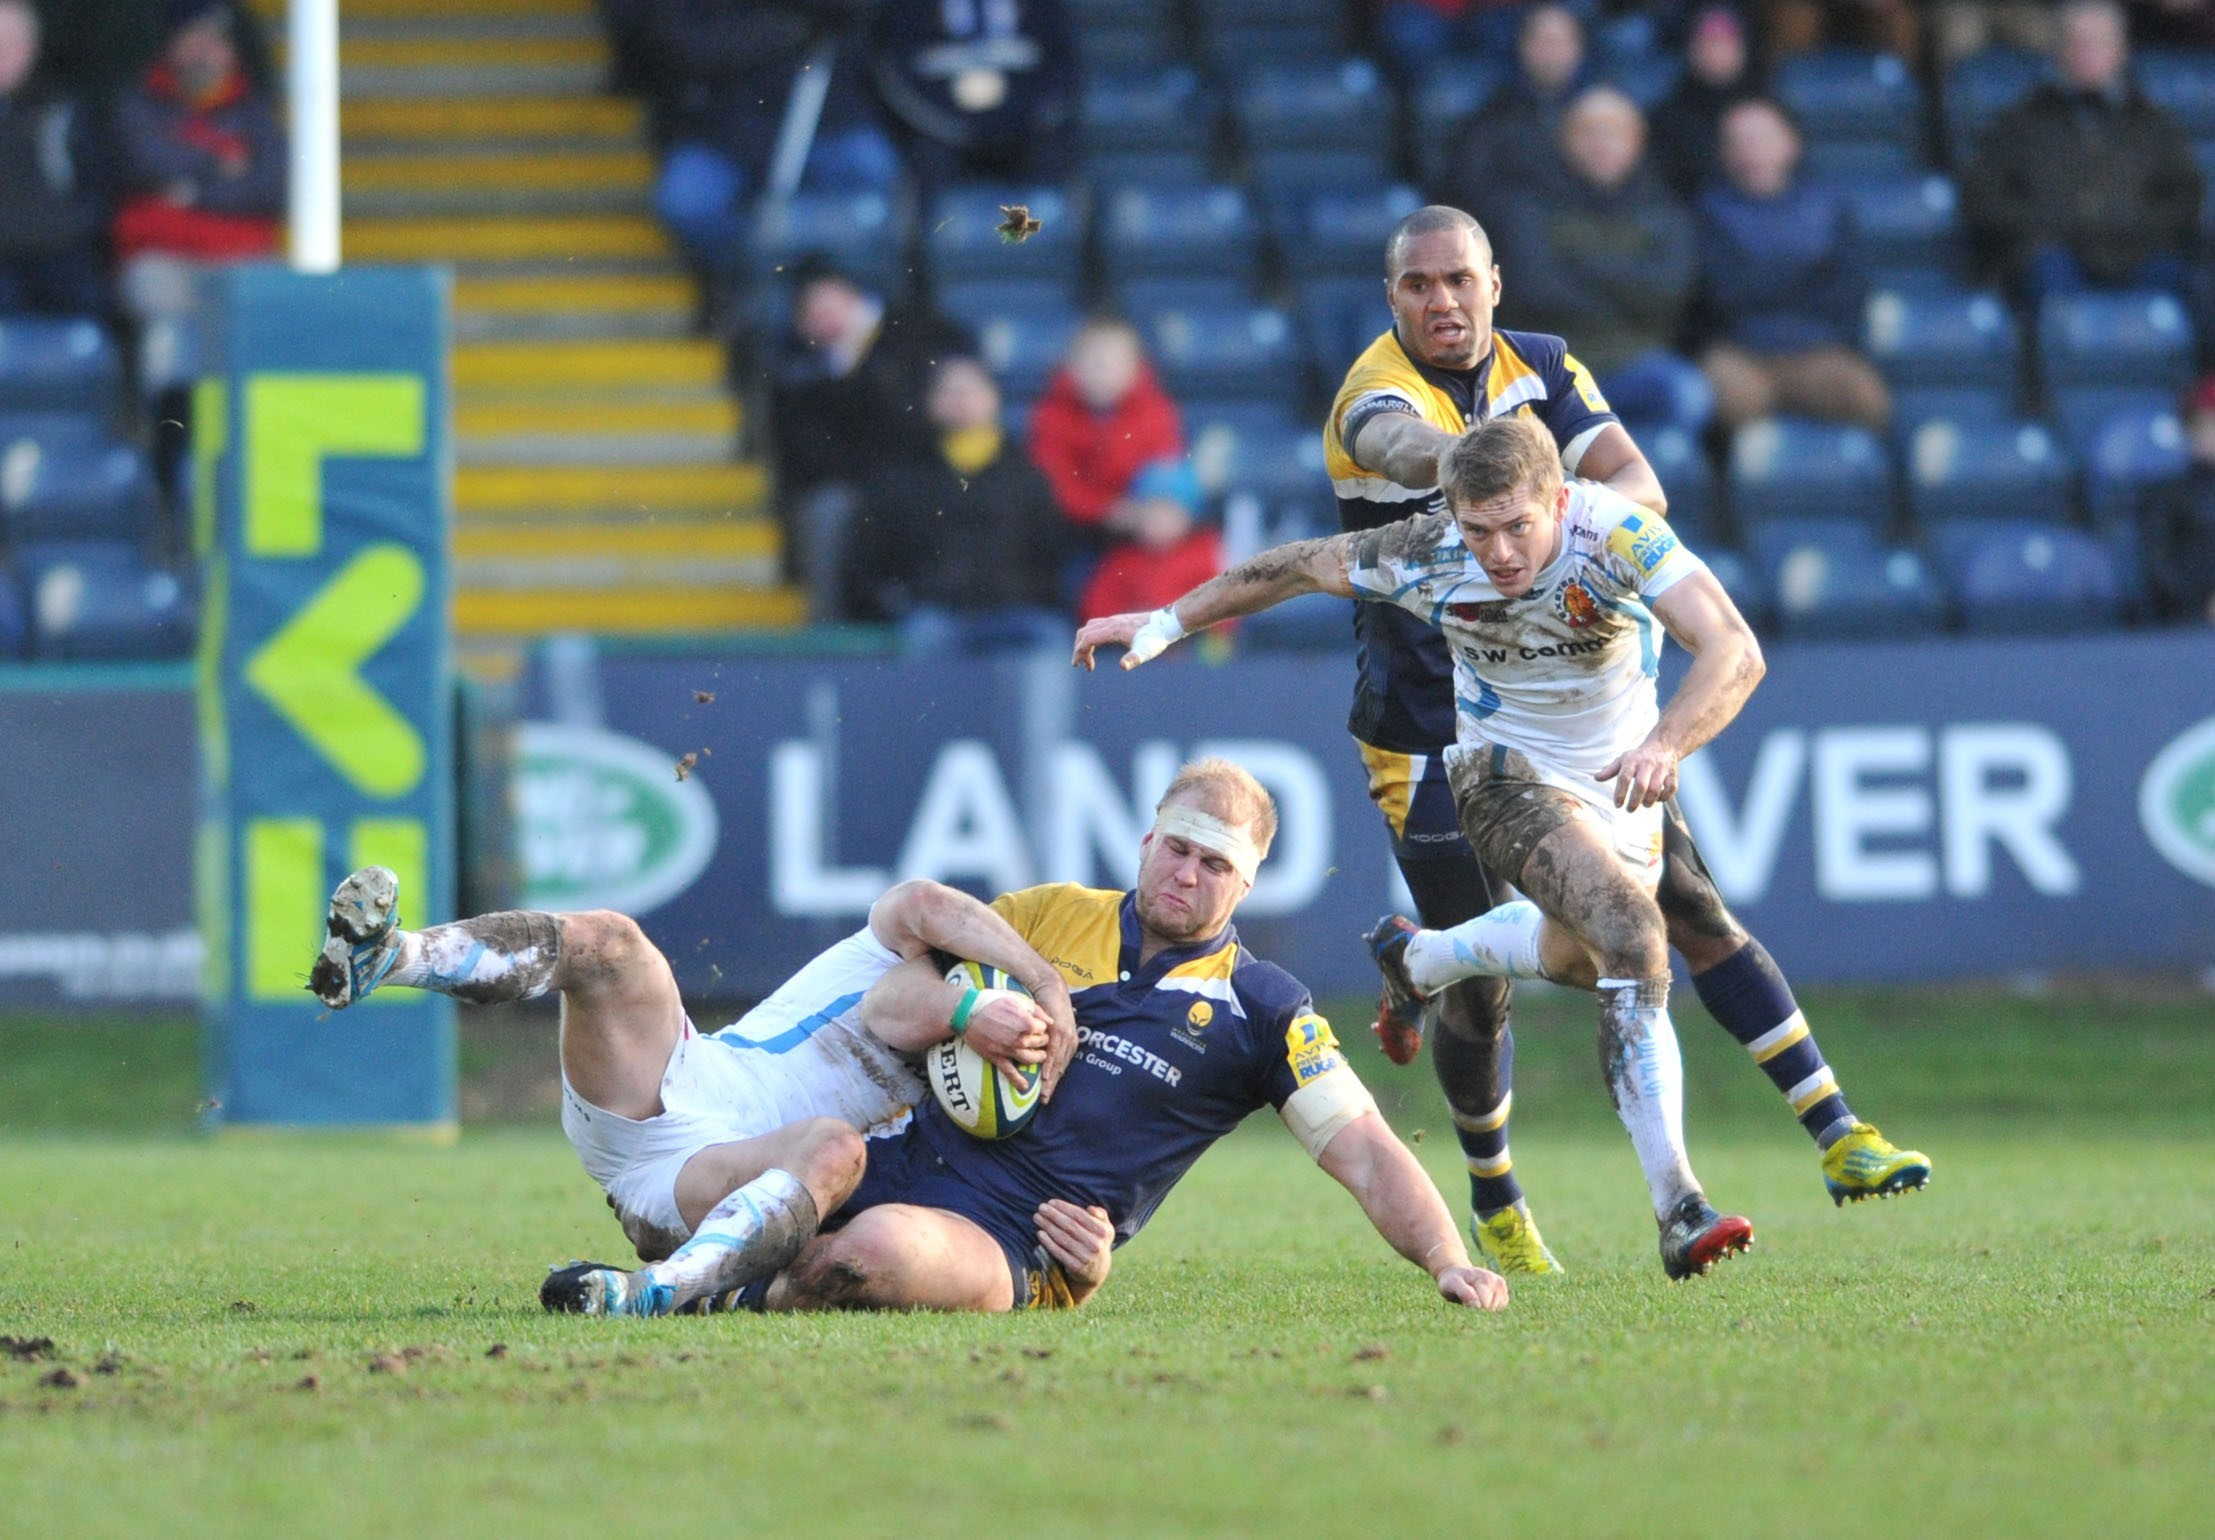 George Porter in action for Worcester Warriors.